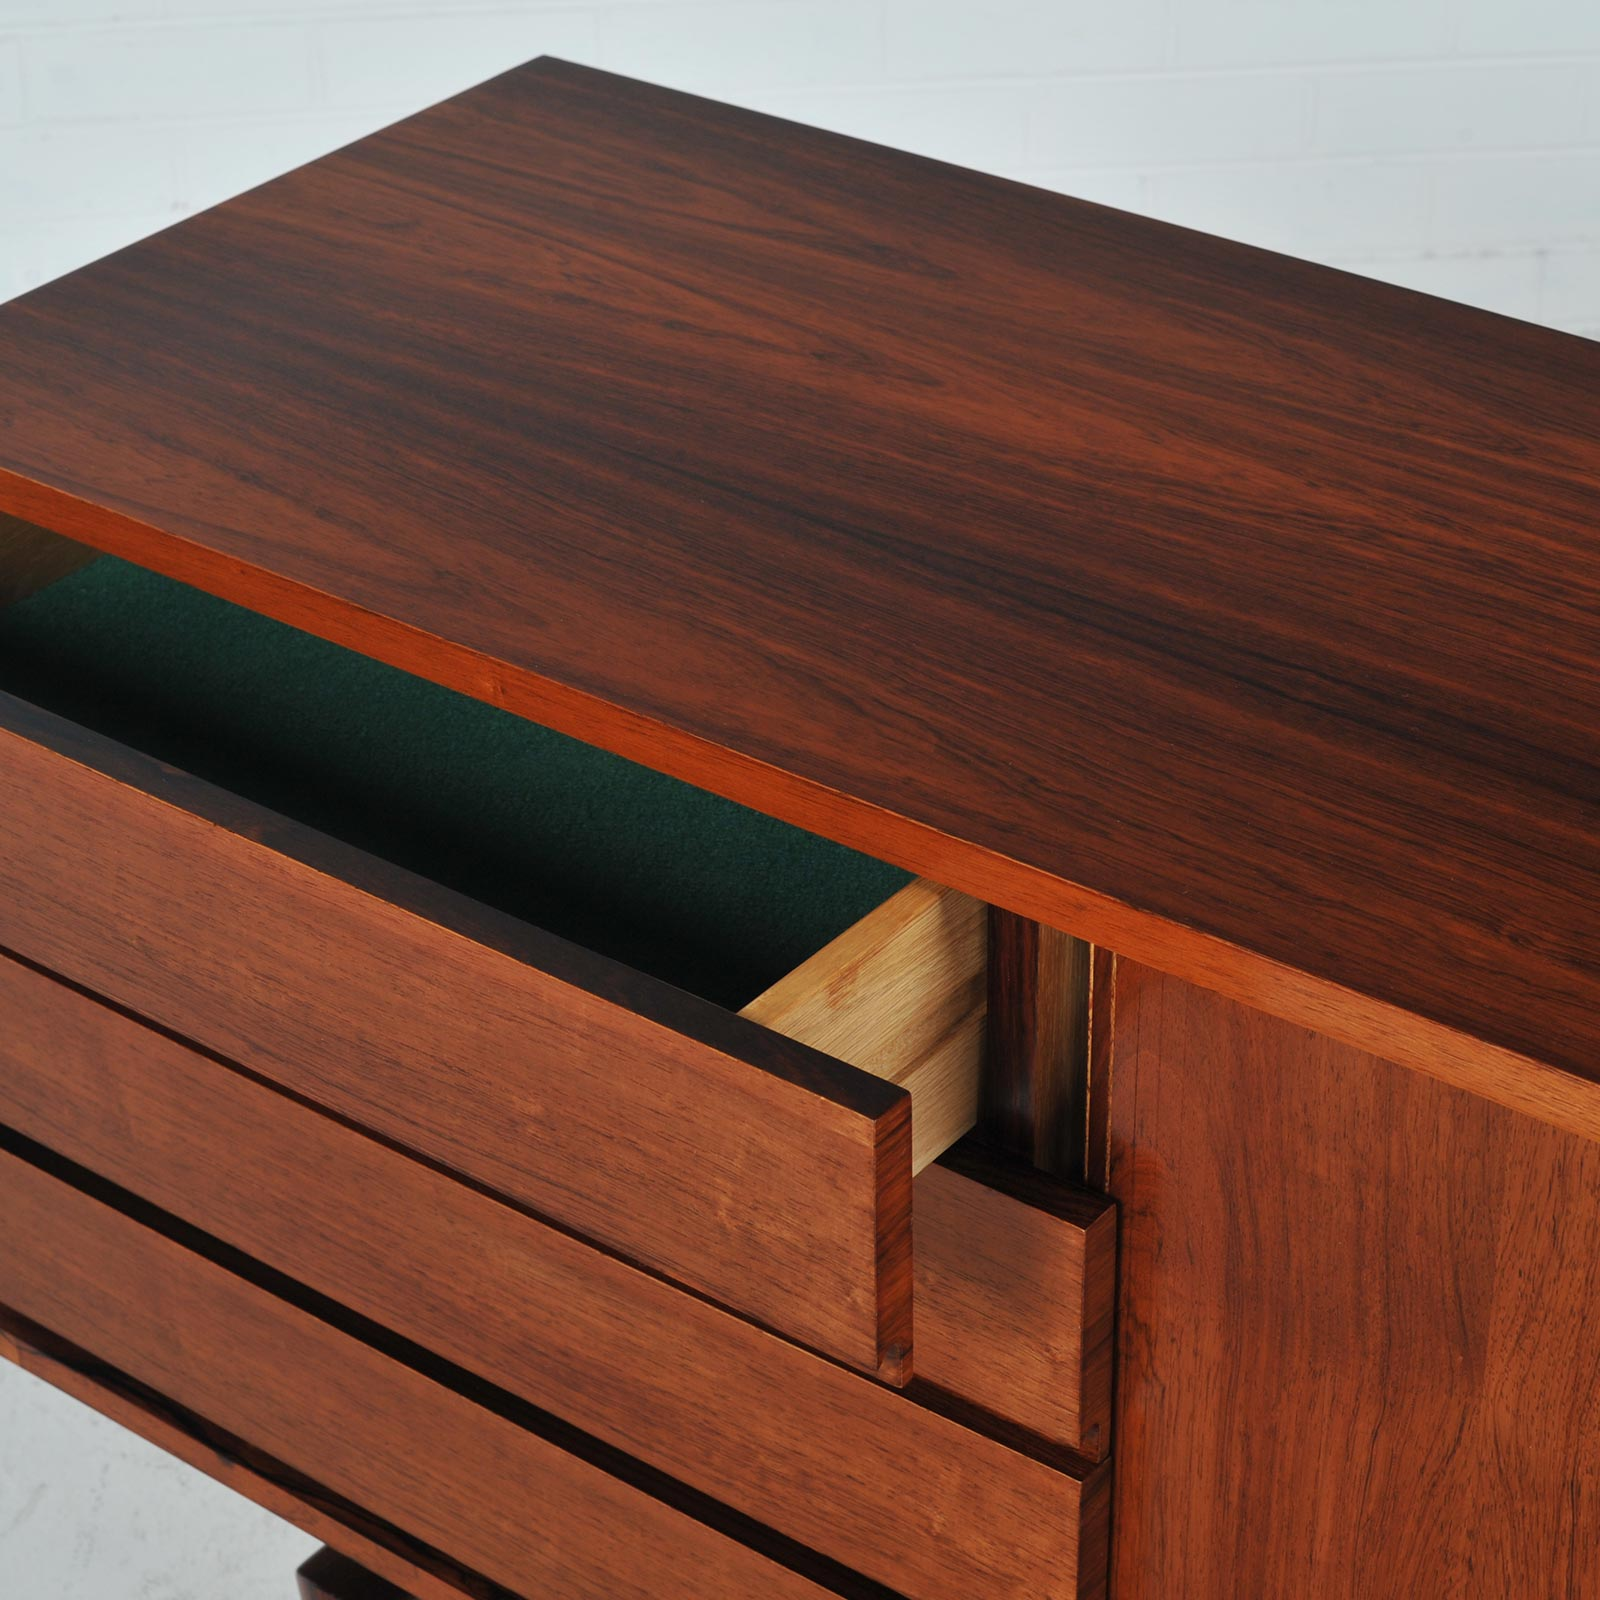 Sideboard By H W Klein In Rosewood With Tambour Doors 1960s Denmark 01